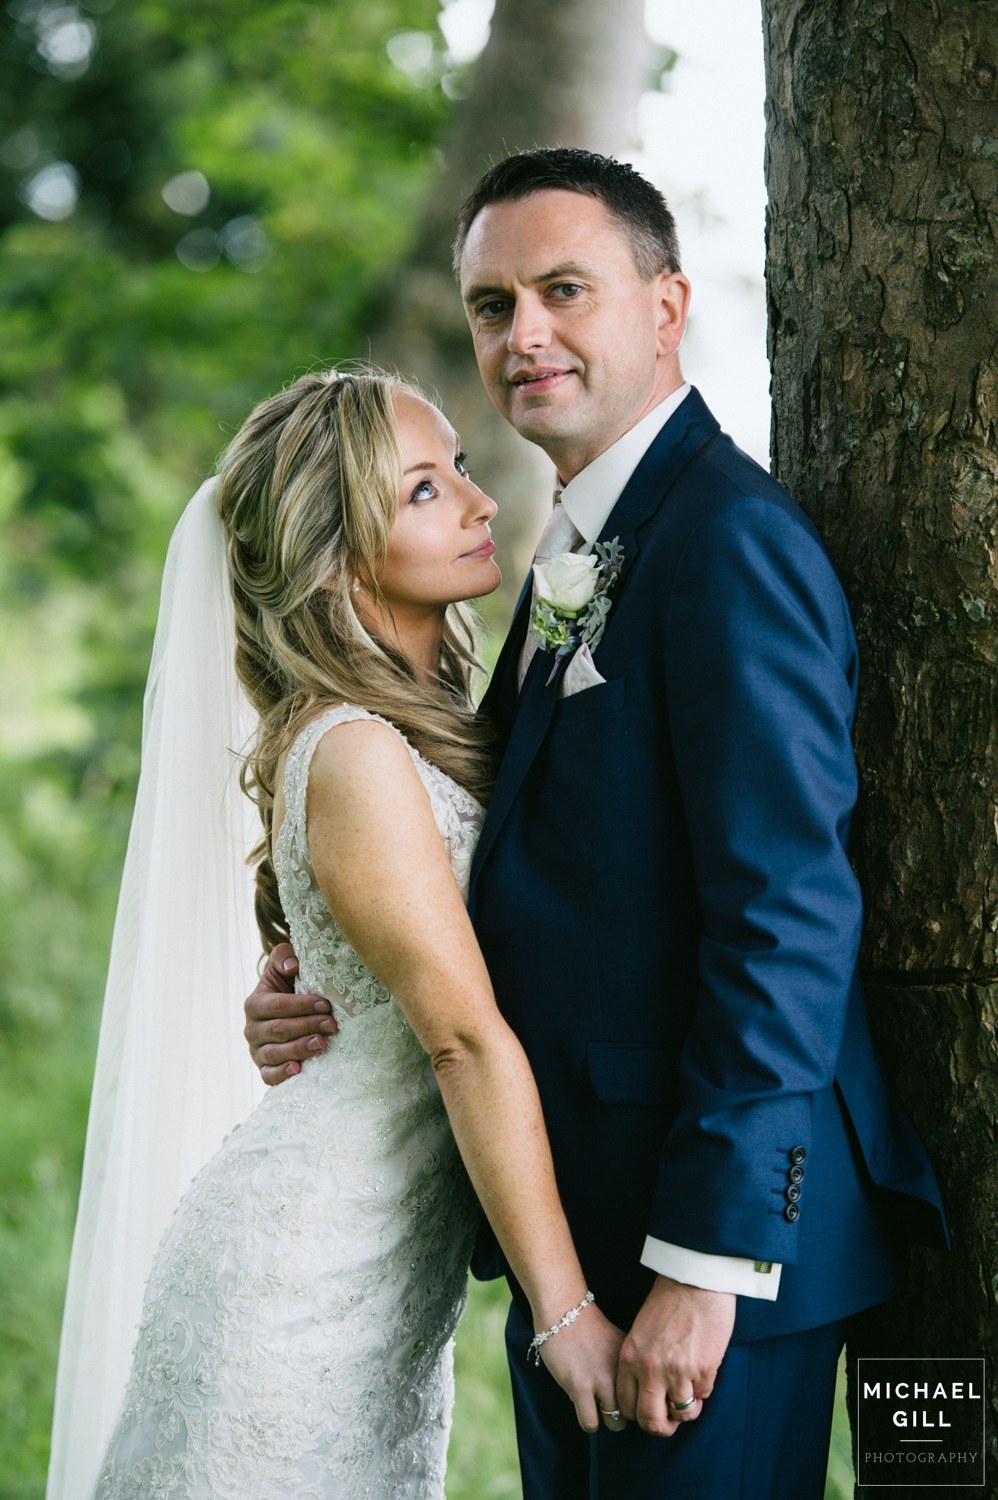 Michael_Gill_Photography_Redcastle_Hotel_ Wedding-3720.jpg